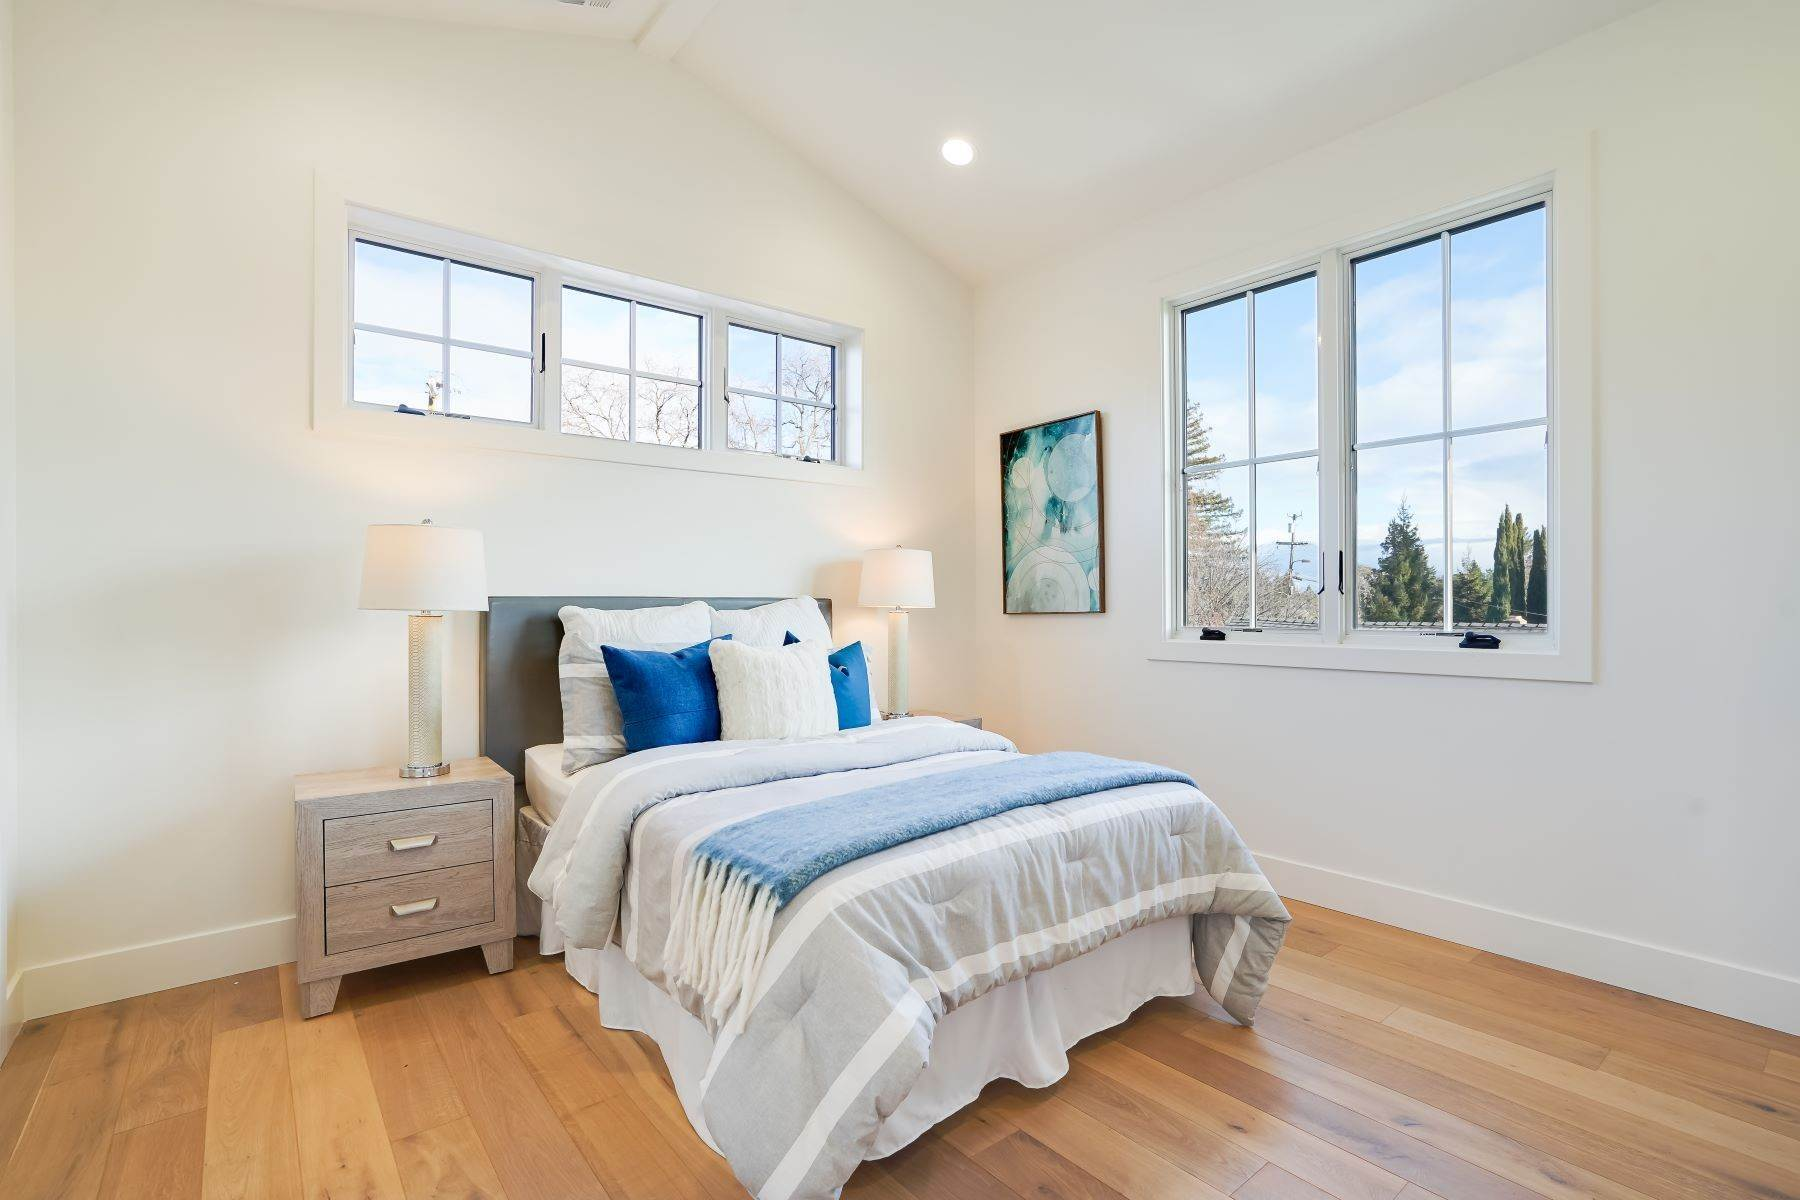 39. Single Family Homes for Sale at Modern Farmhouse in Coveted Mount Carmel 538 Quartz Street Redwood City, California 94062 United States